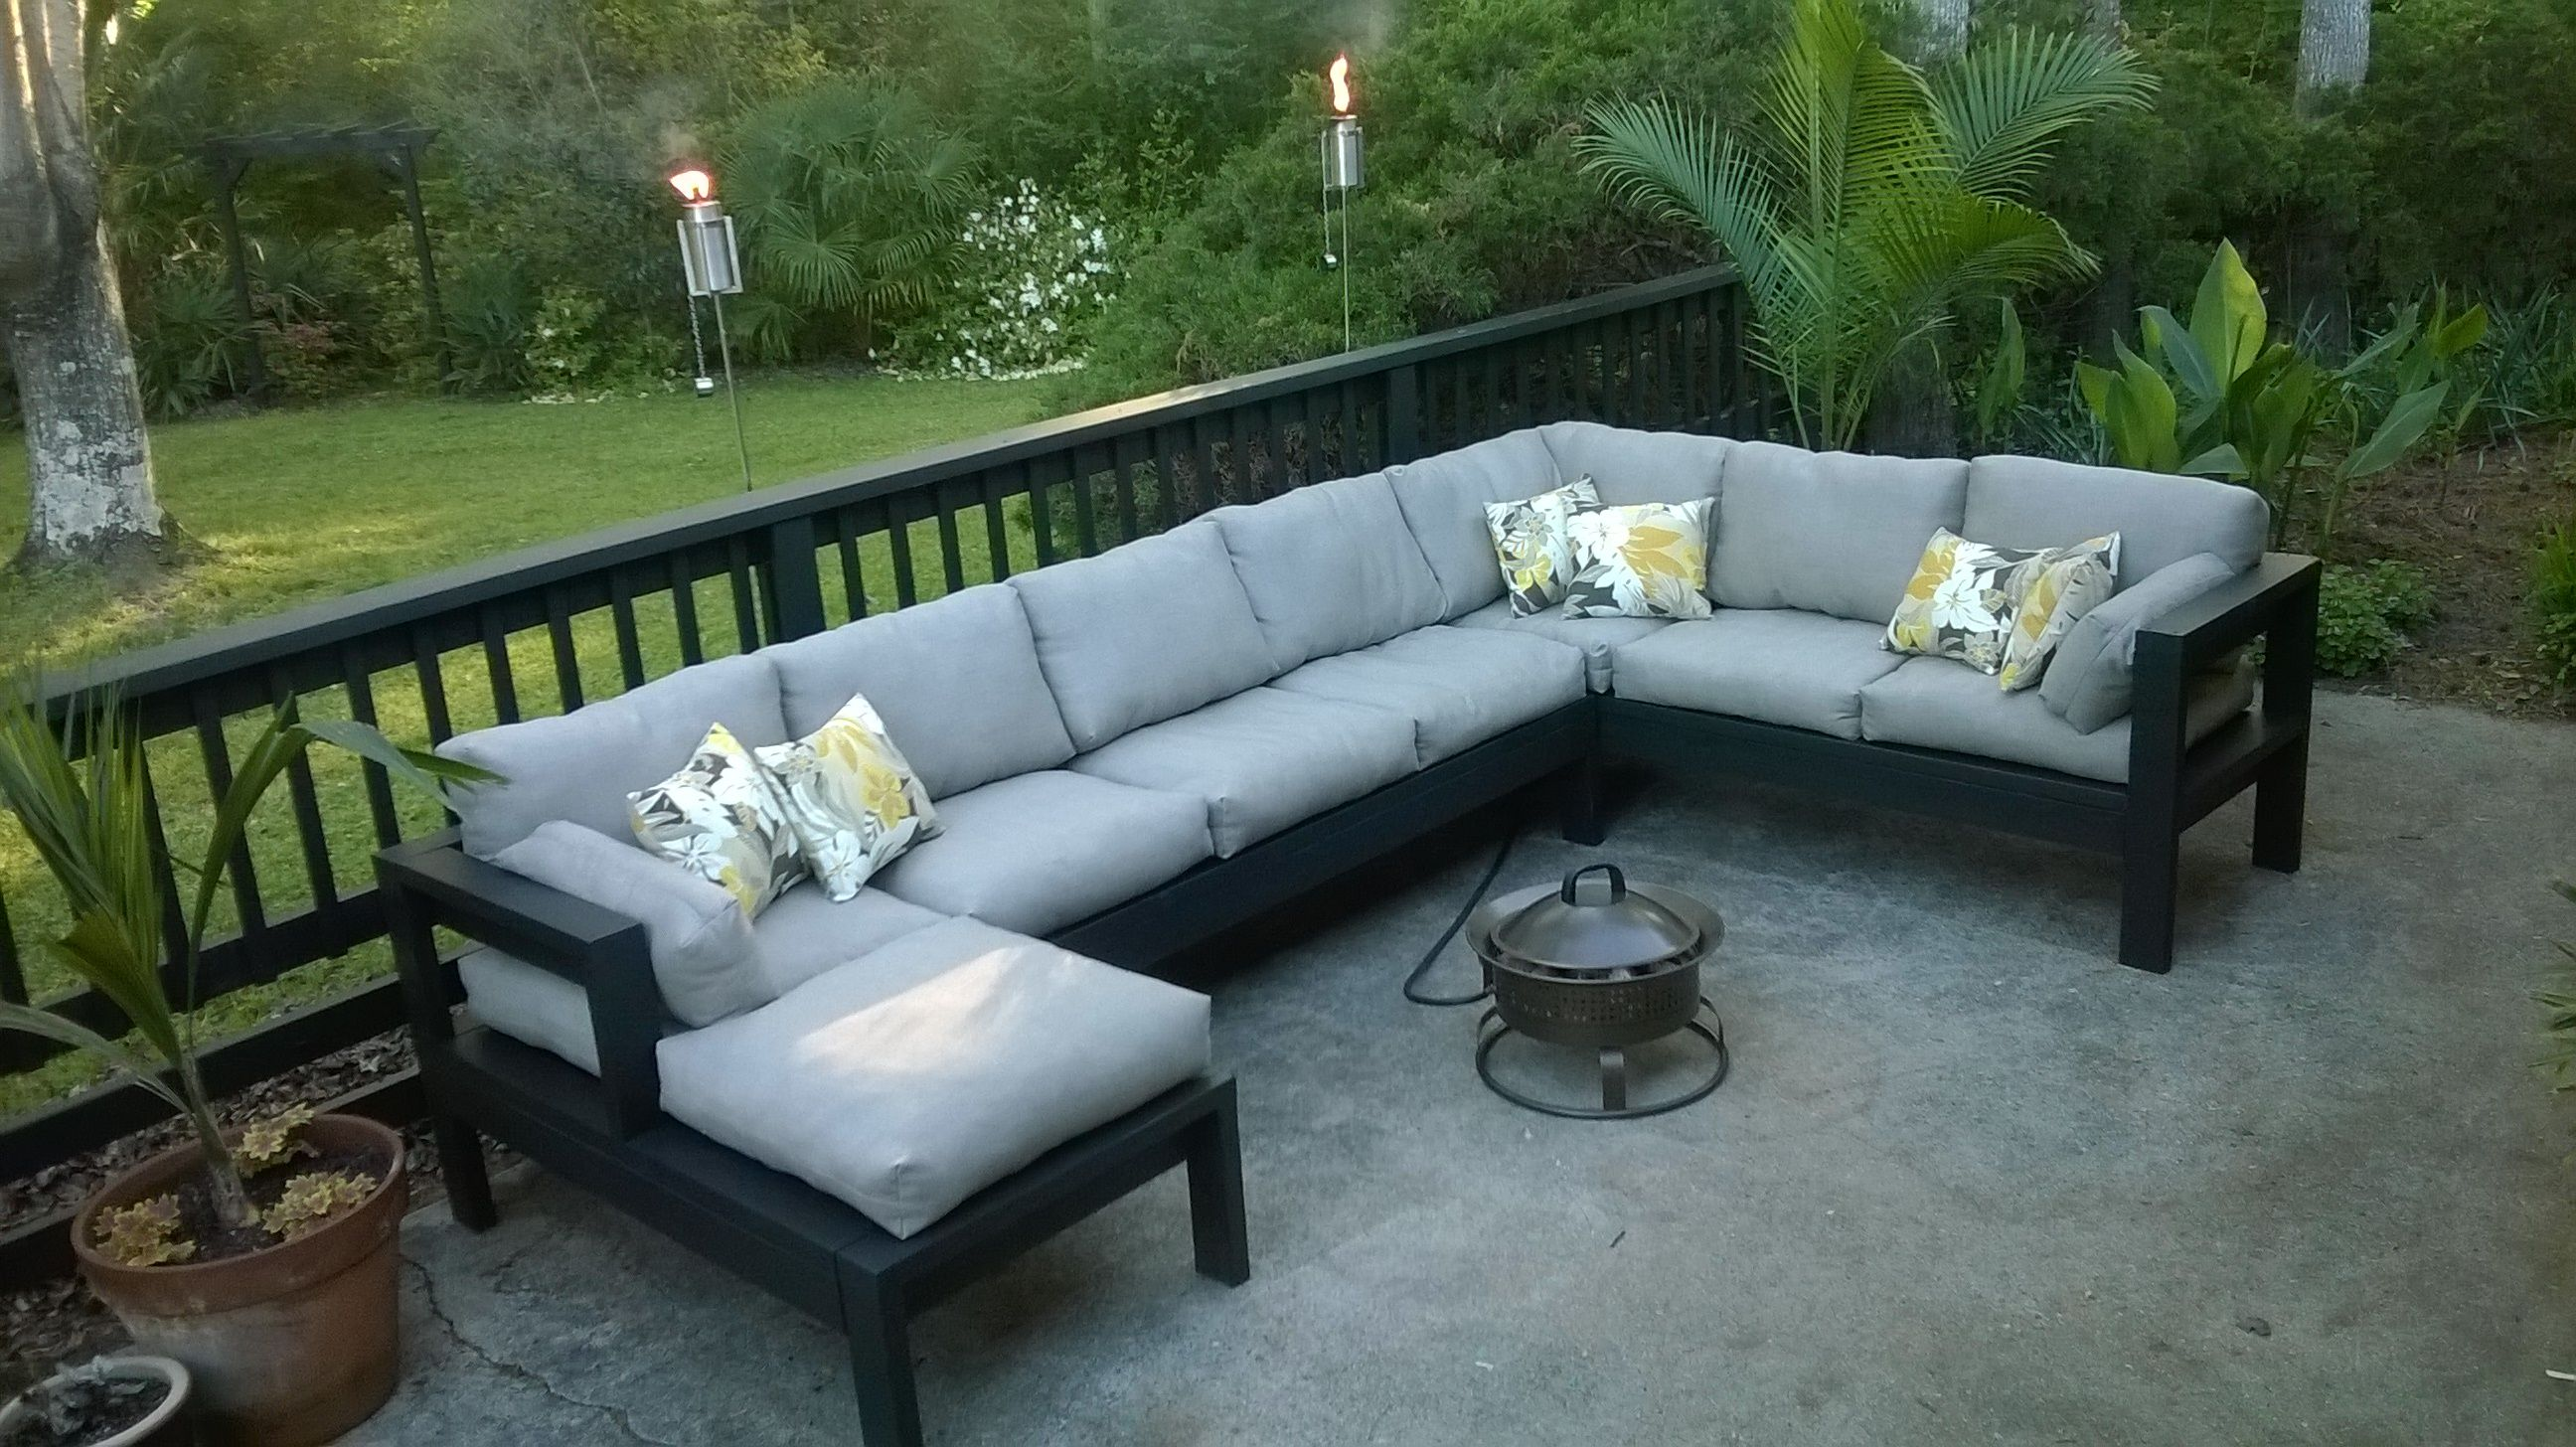 Do Yourself Home Improvement Project Outdoor Sectional Do It Yourself Home Projects From Ana